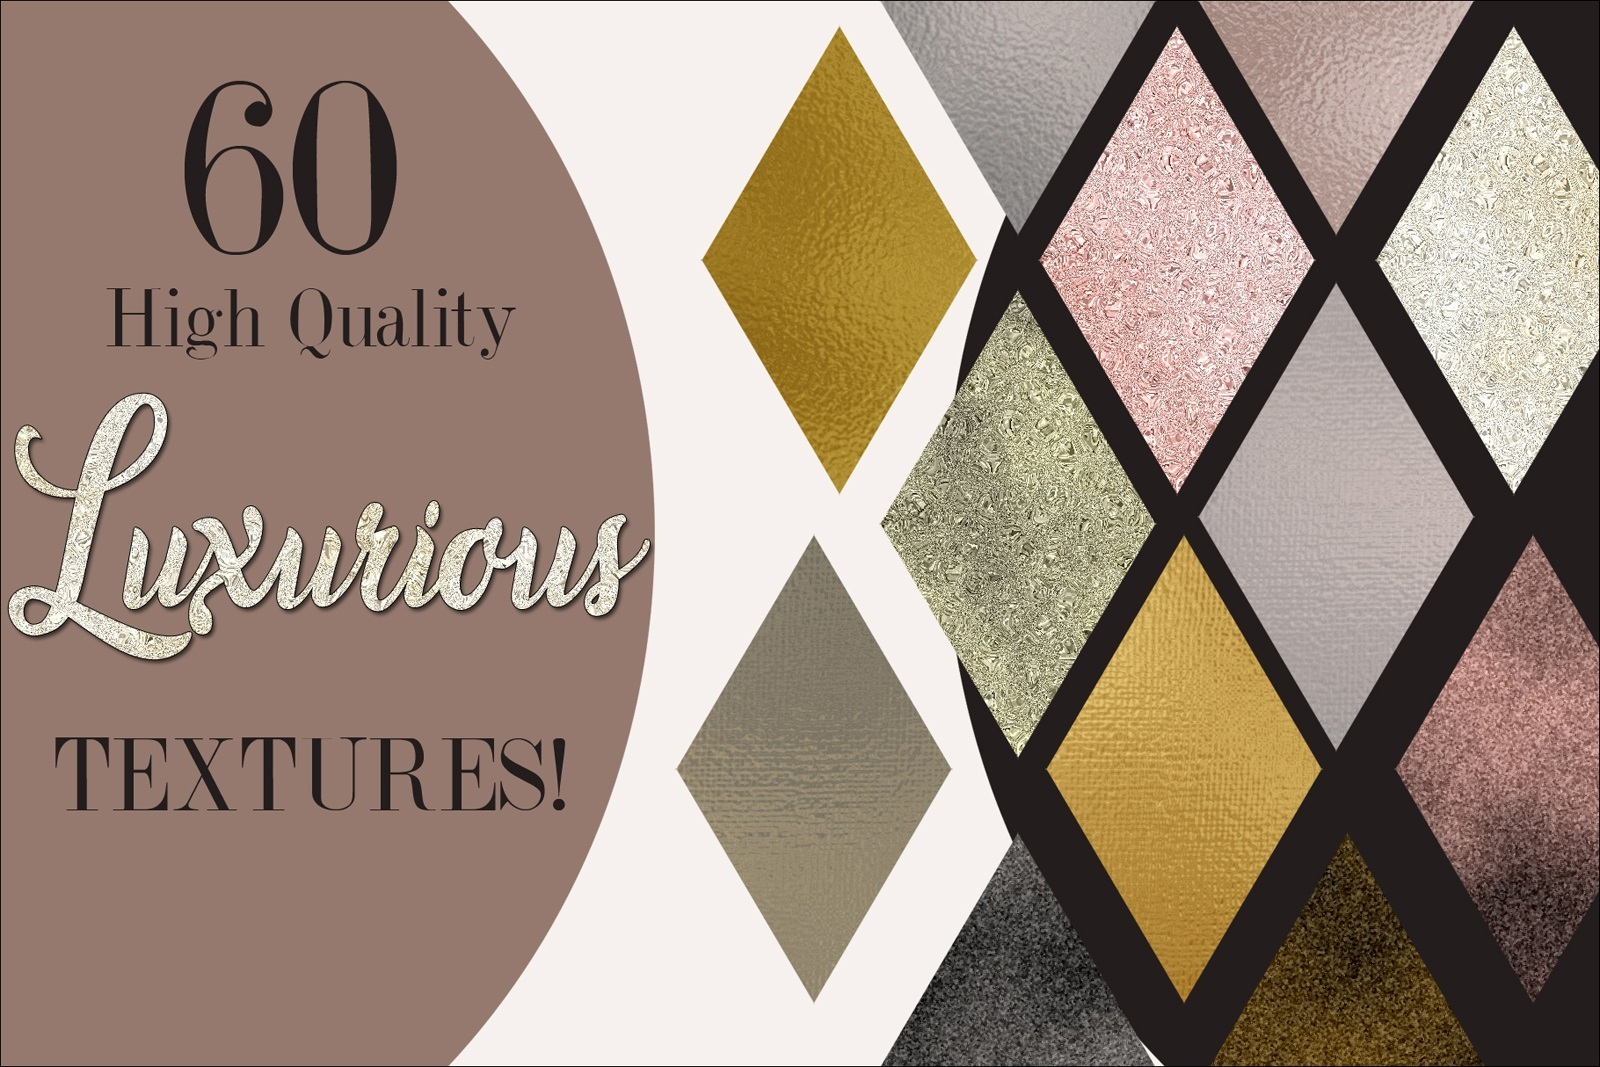 Luxurious Textures Collection